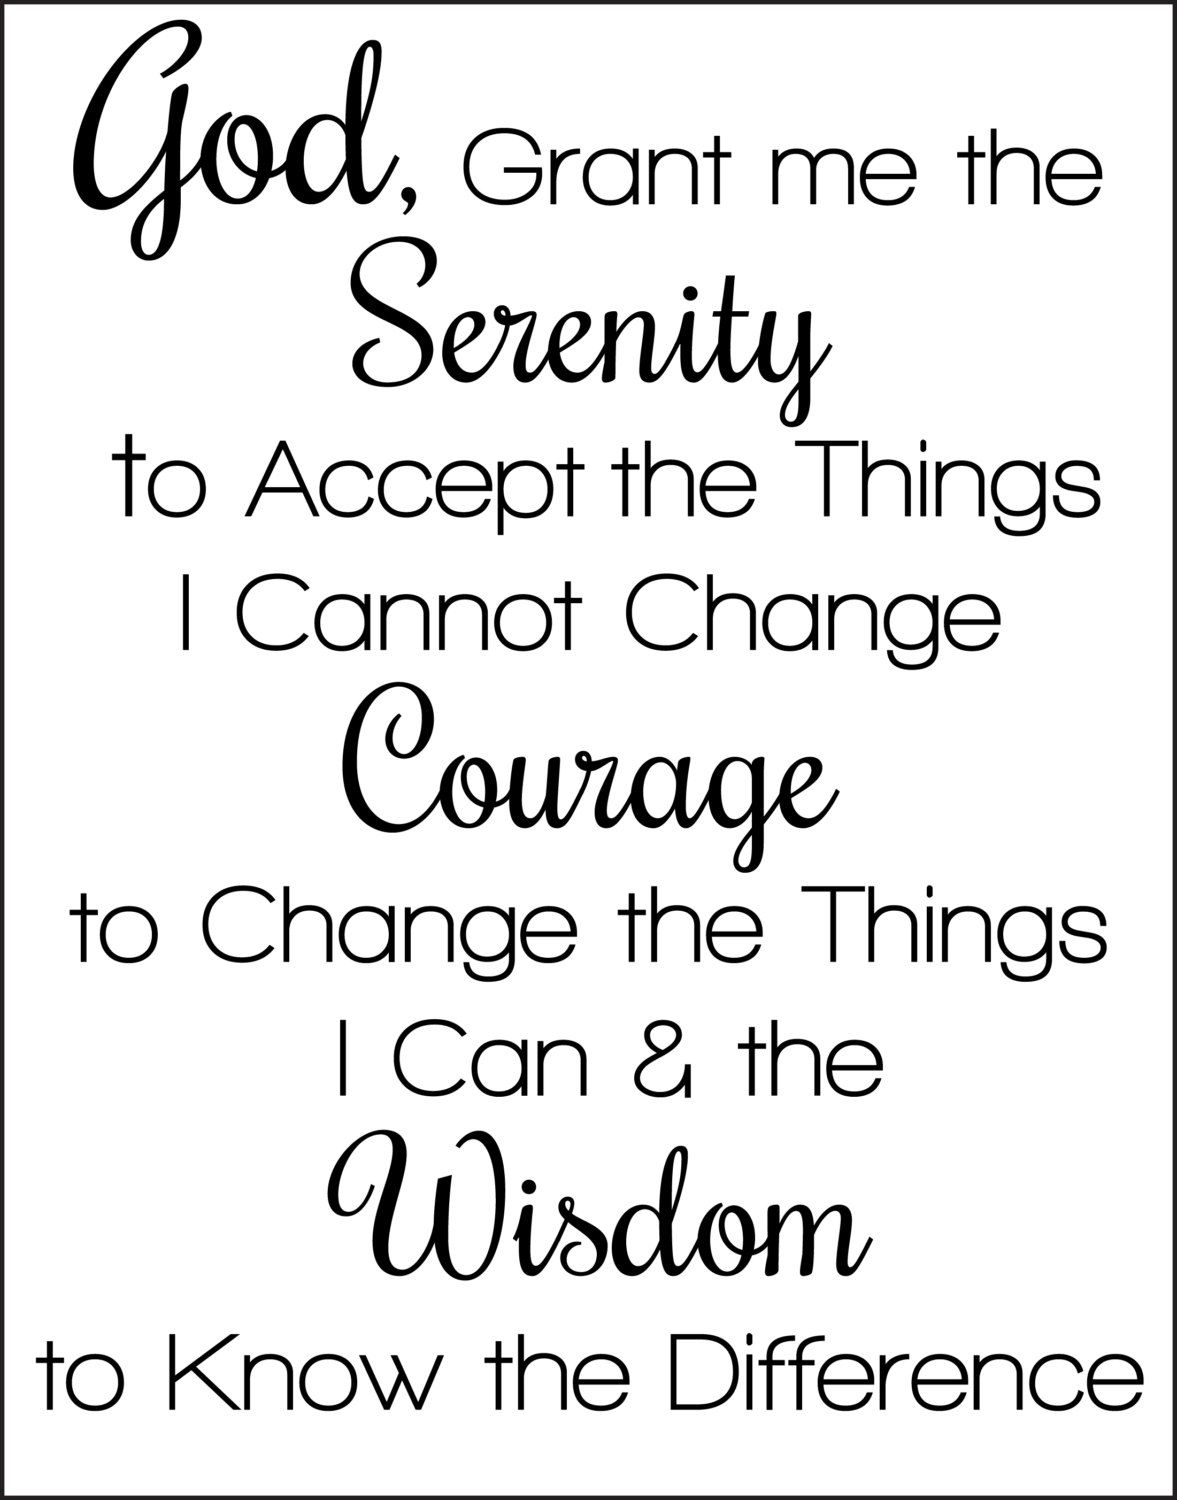 Serenity Prayer Printable | Christian Counseling And Coaching - Free Printable Serenity Prayer